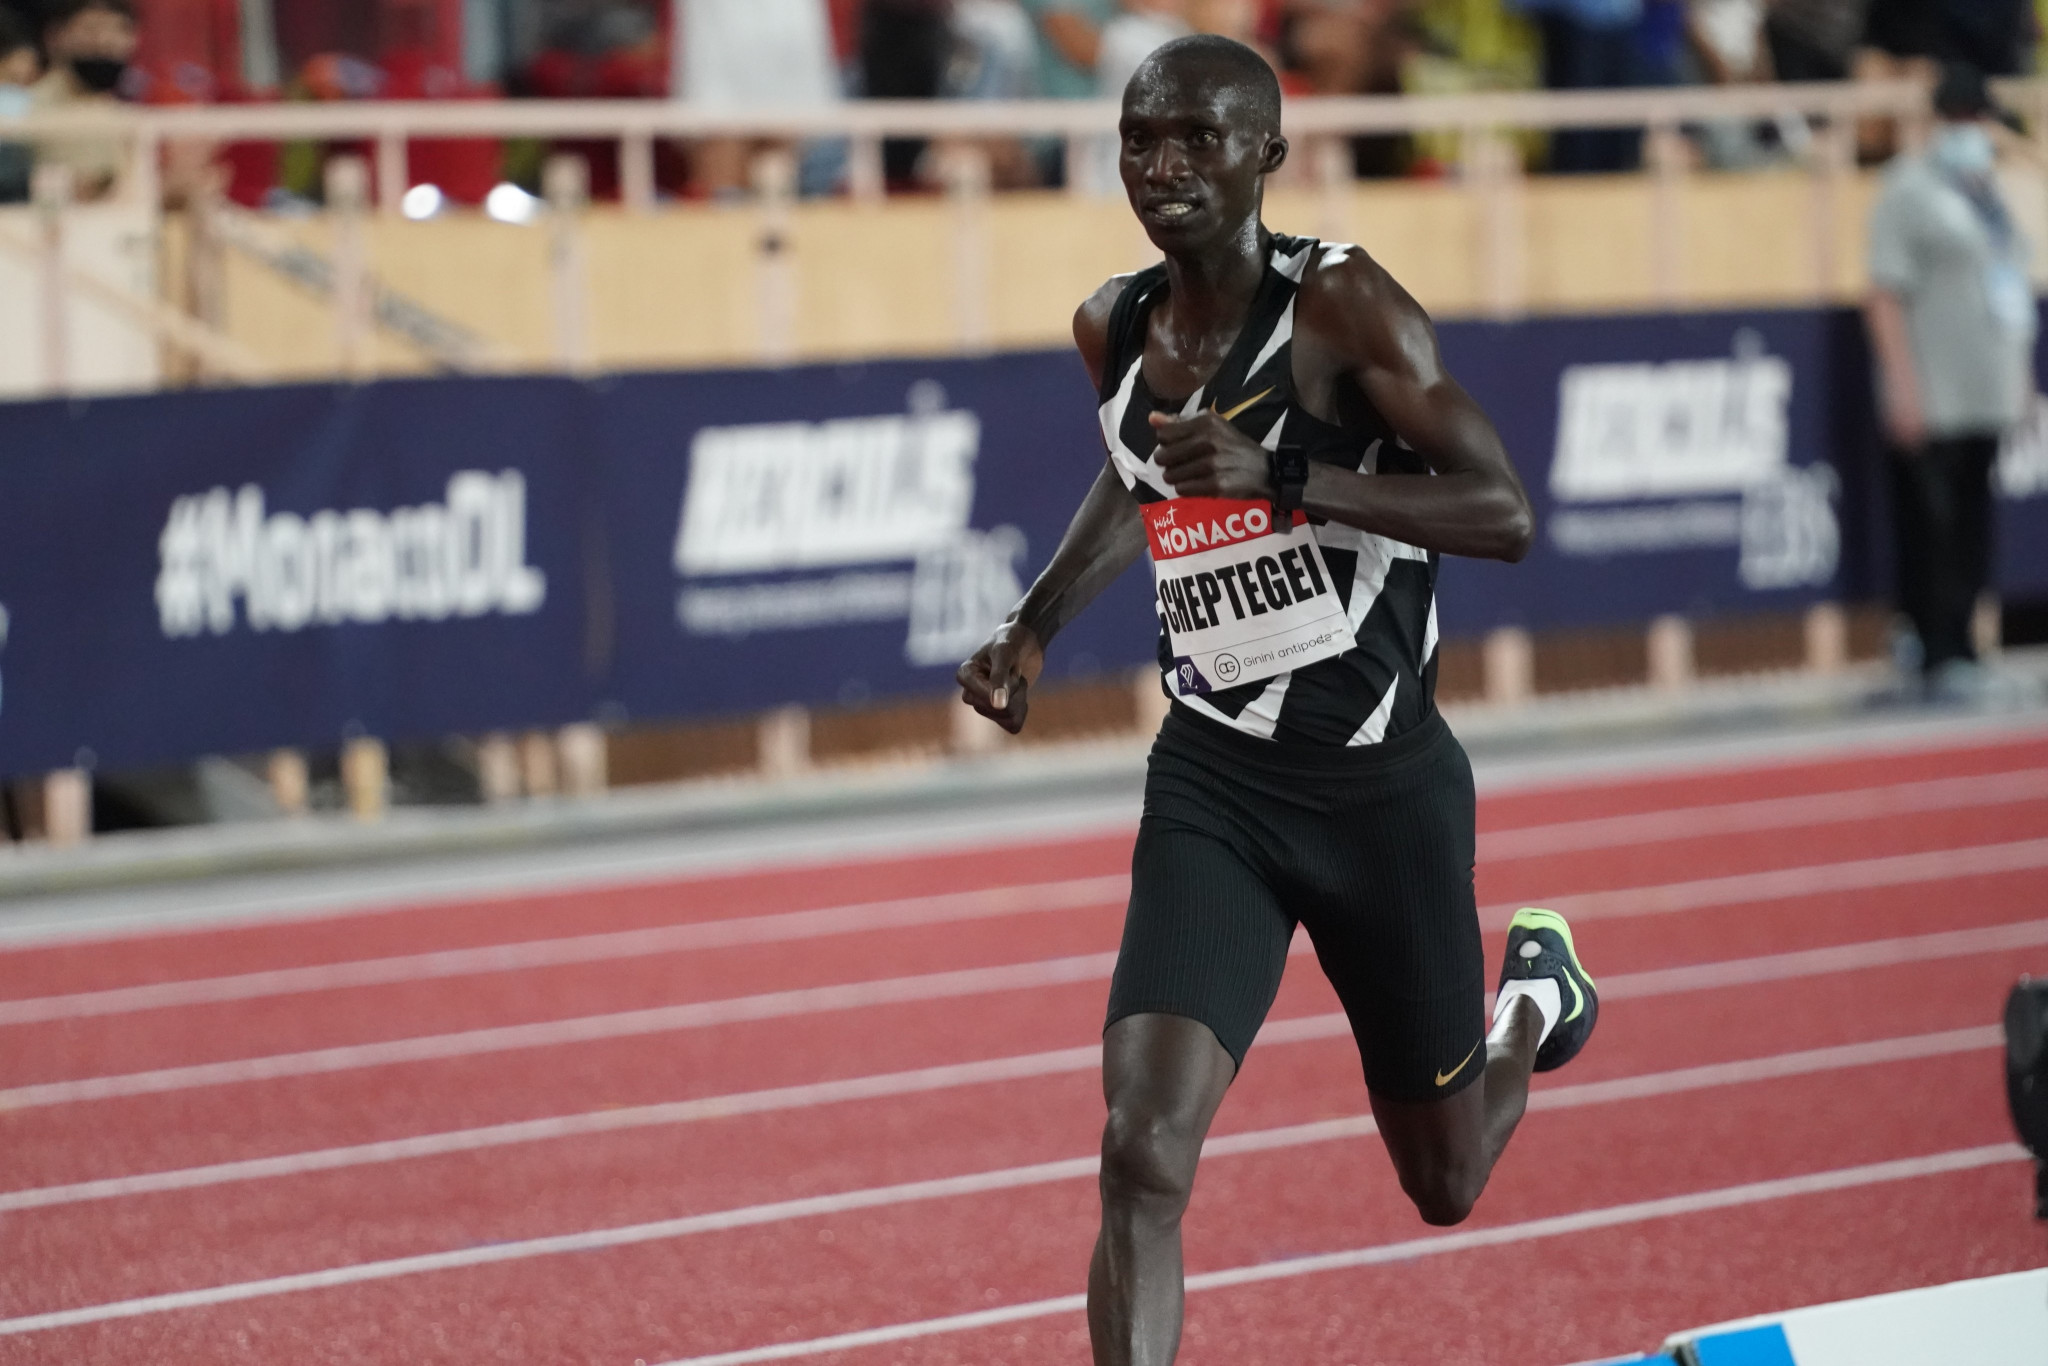 Cheptegei sets world 5,000m record as Wanda Diamond League opens in epic style in Monaco